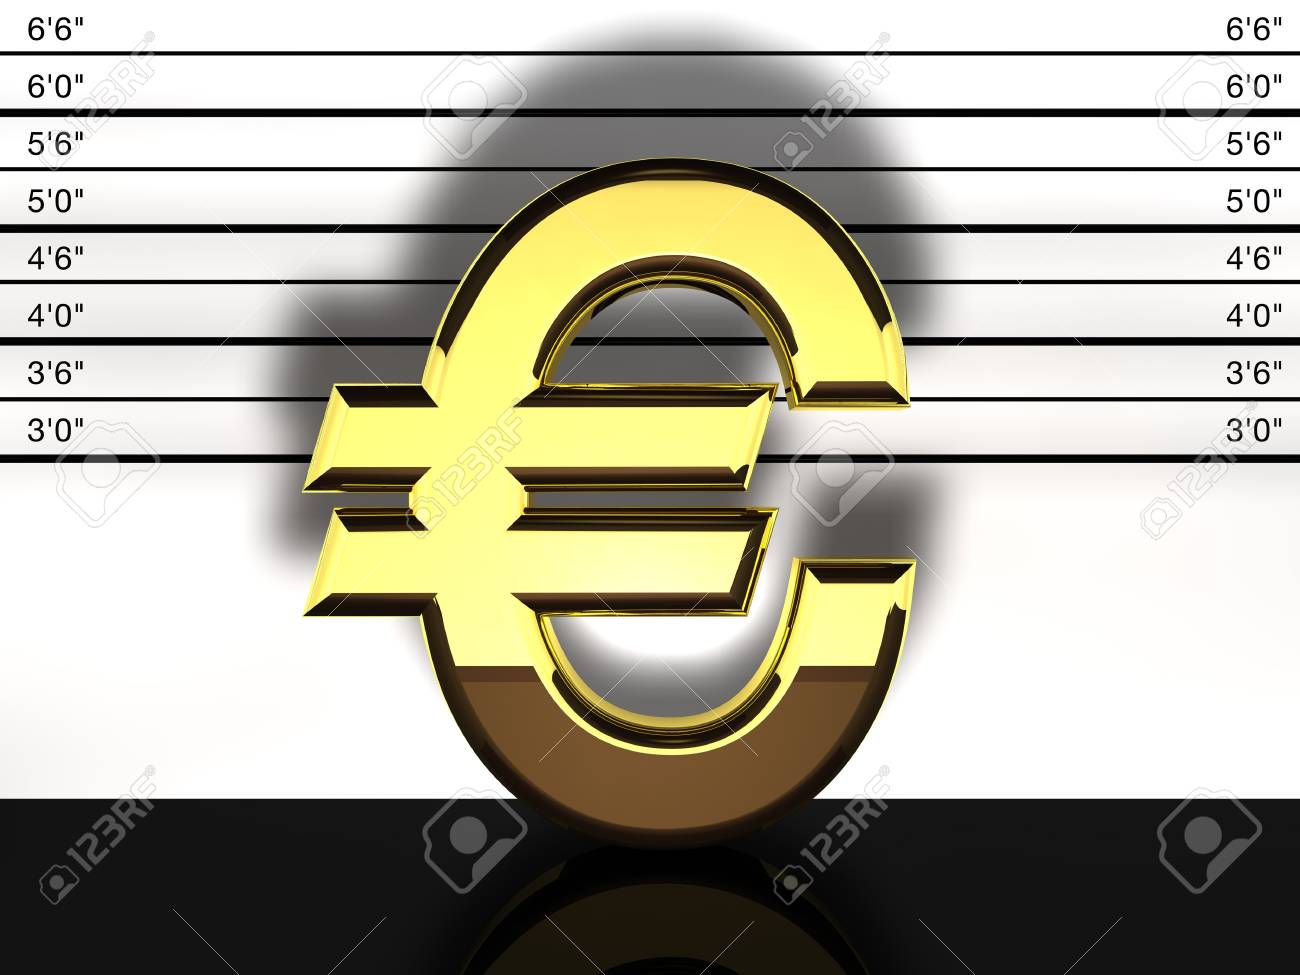 Euro sign mug shot, financial fraud and speculation Stock Photo - 9181642